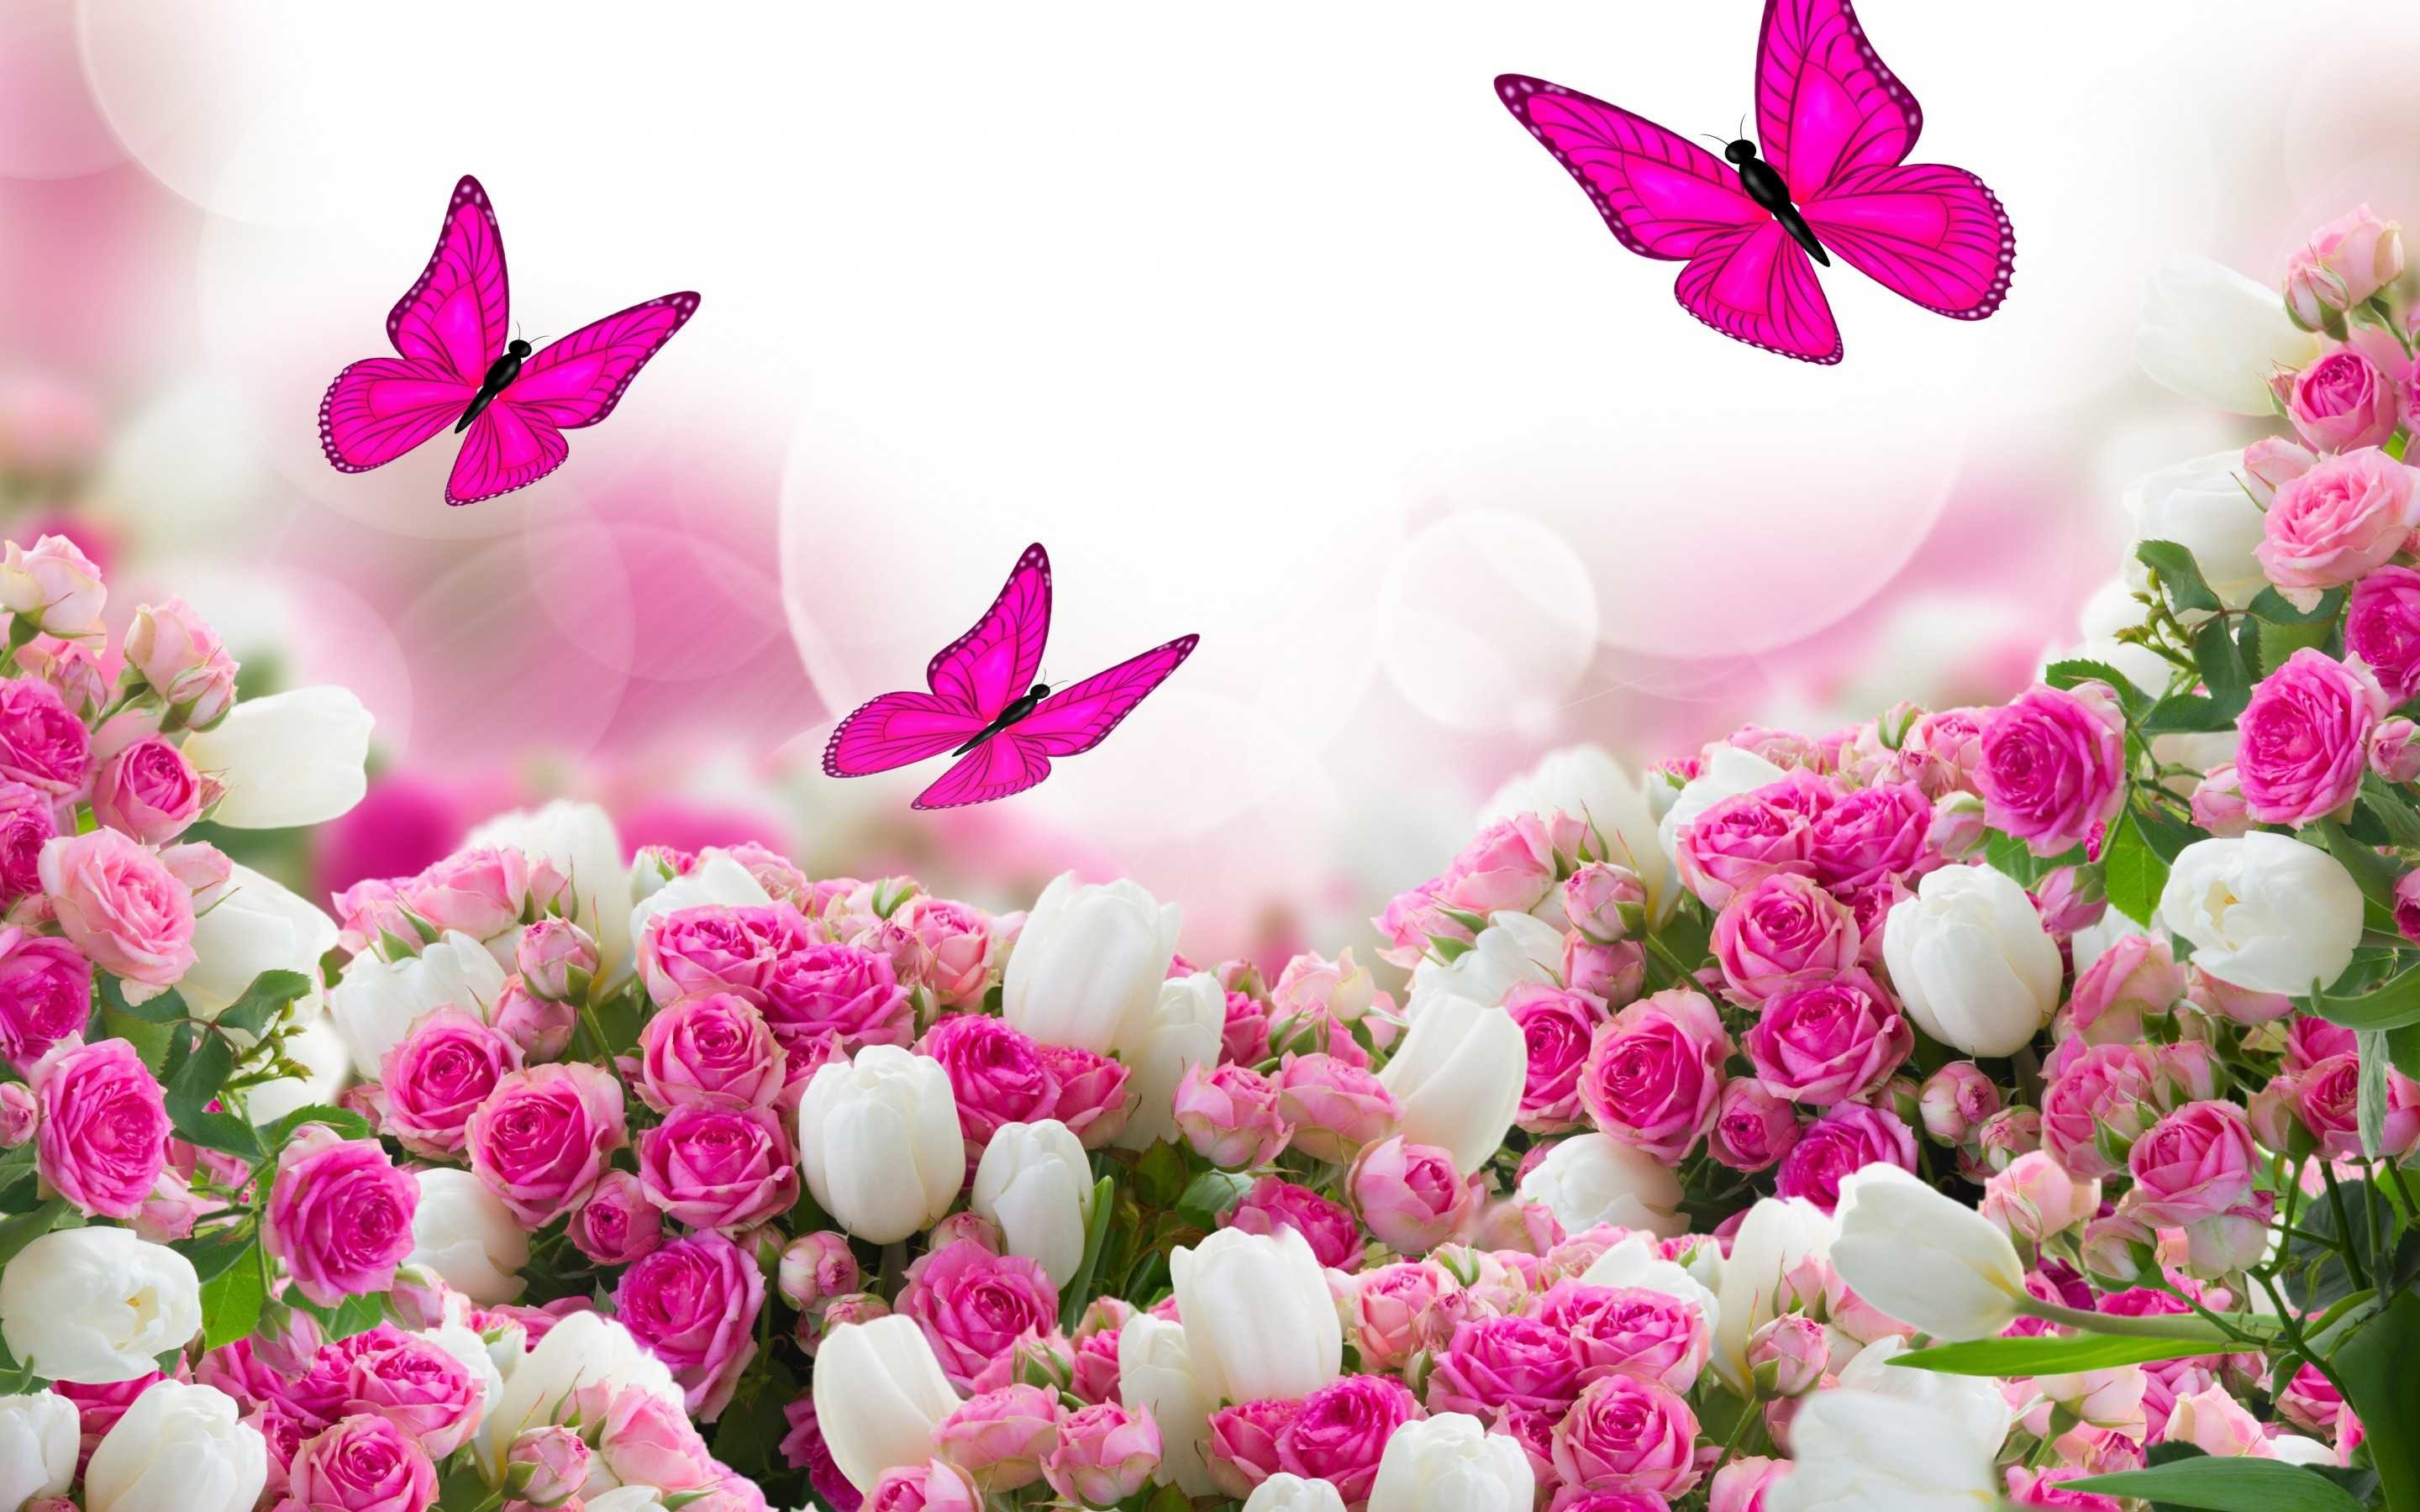 Roses Wallpapers For Desktop 72 Background Pictures